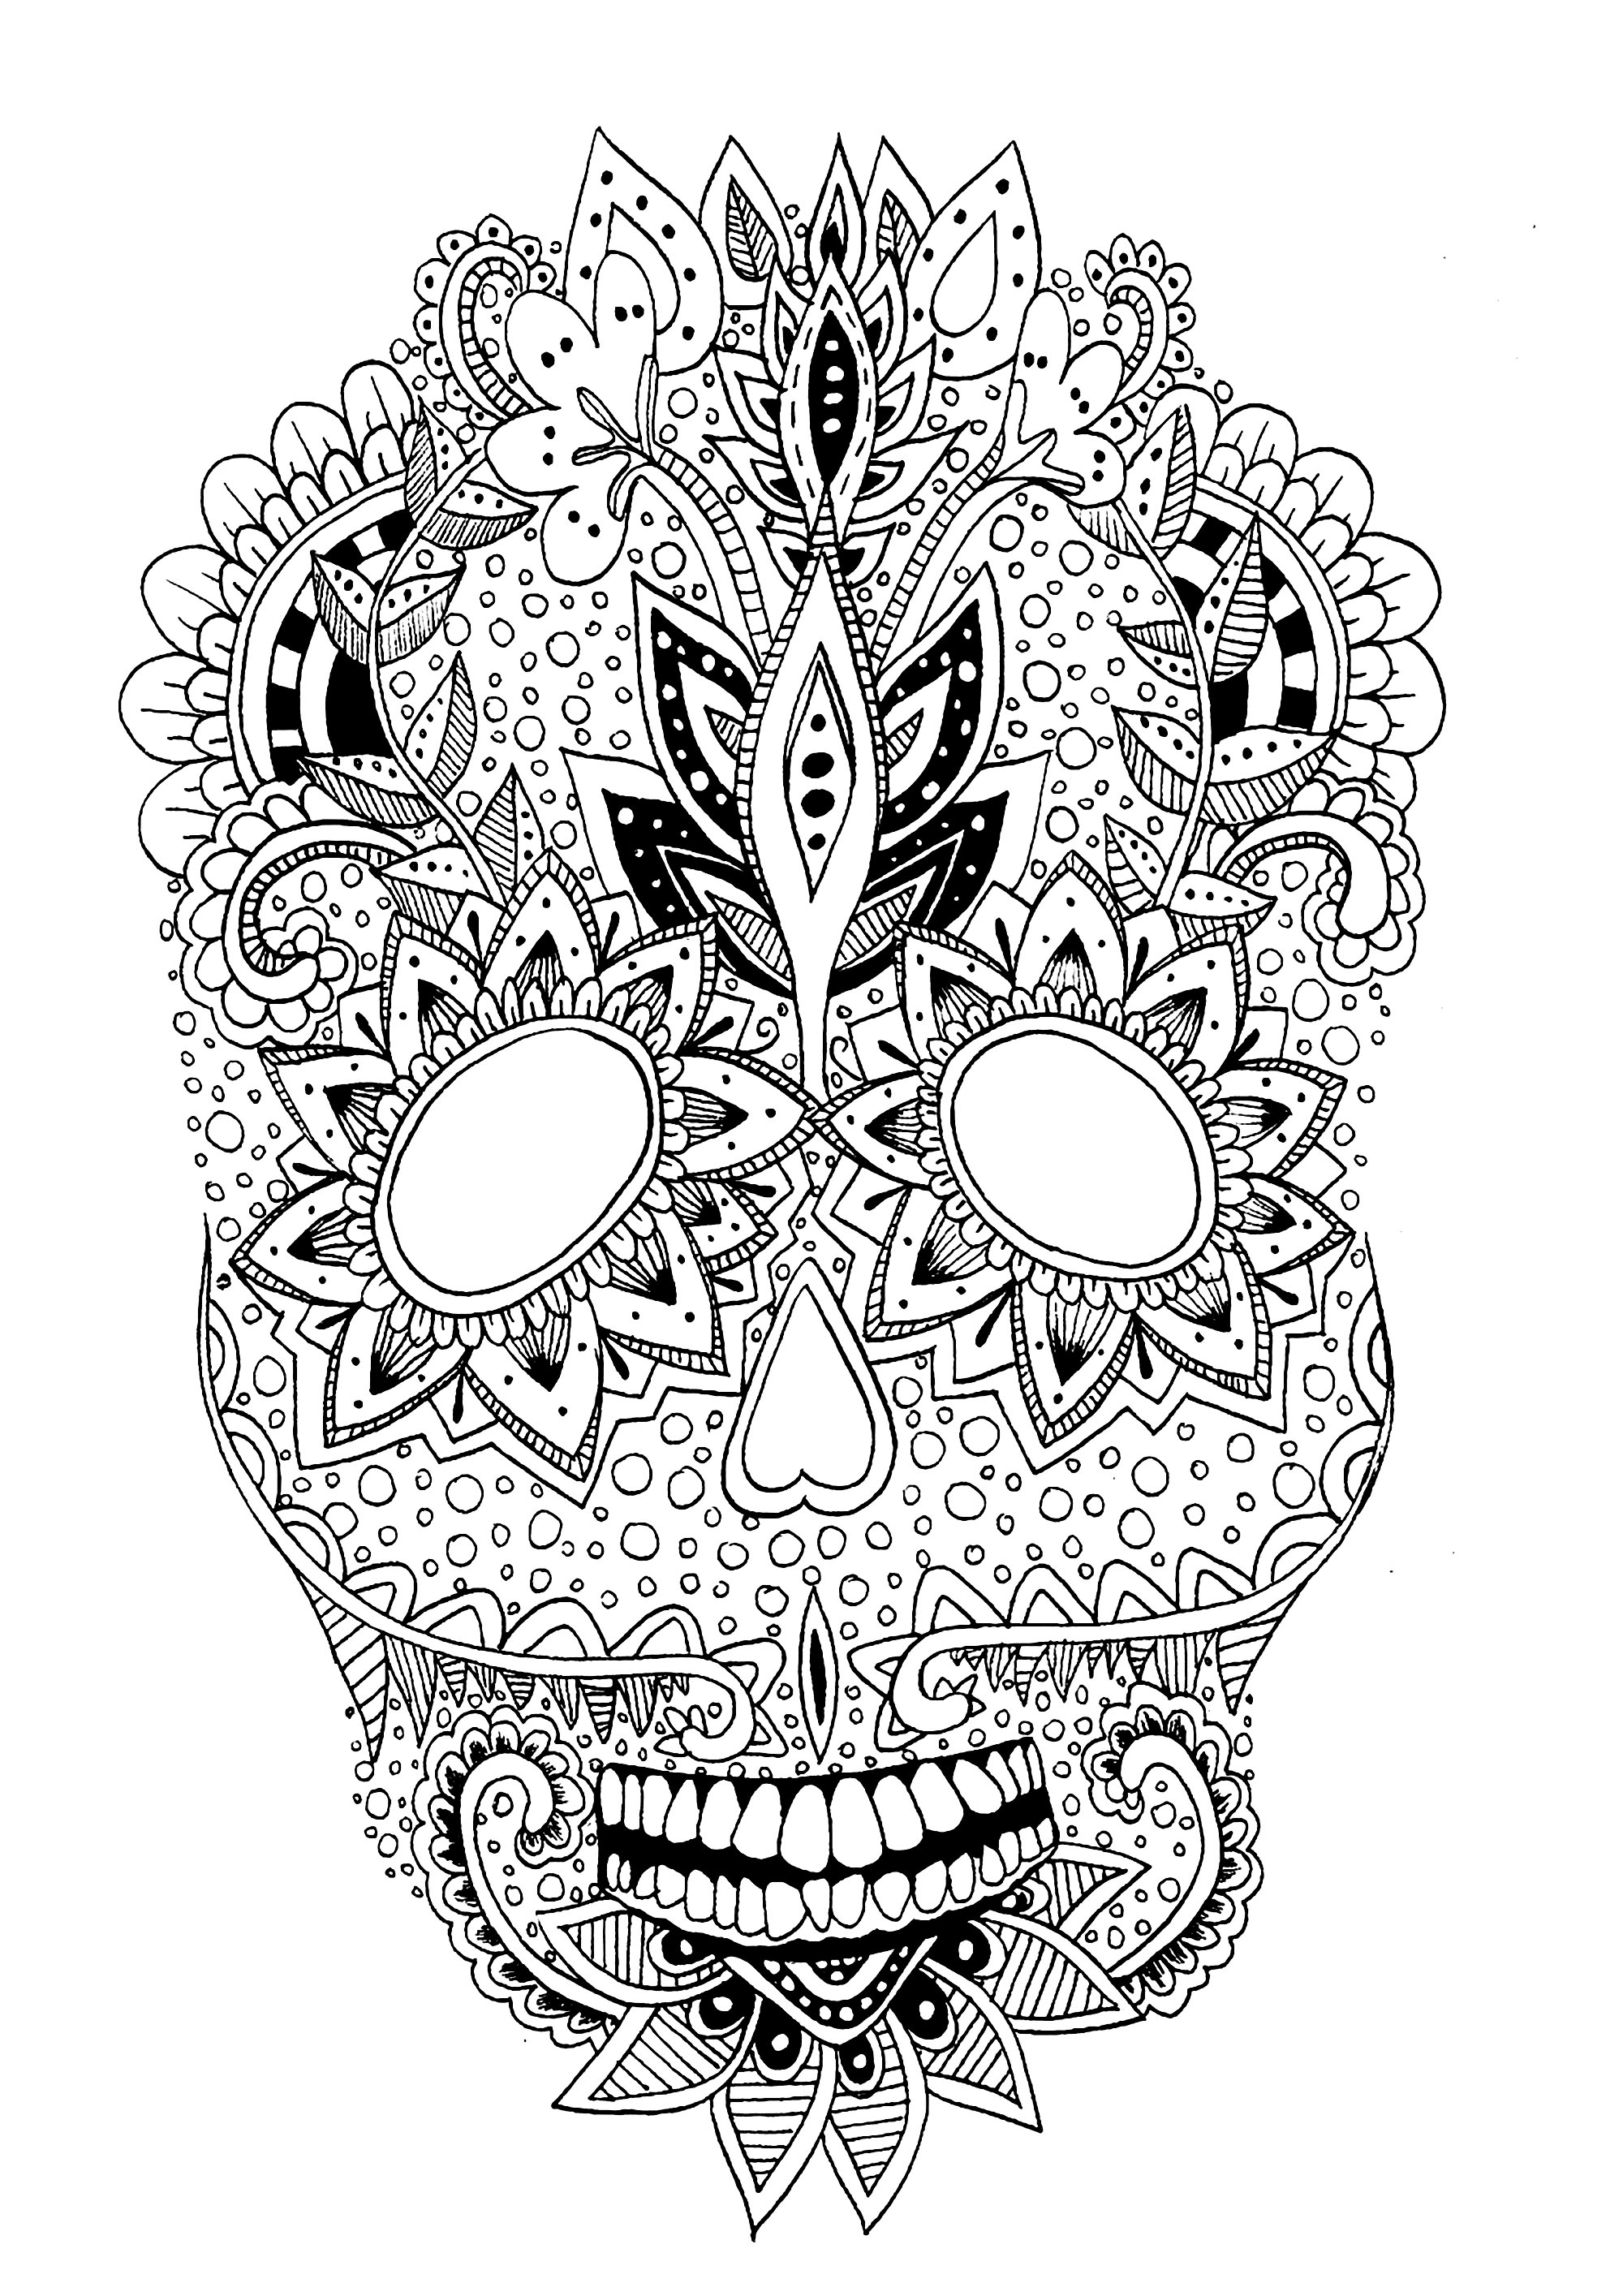 - Skull Details Rachel - Fishes Coloring Pages For Adults Adult